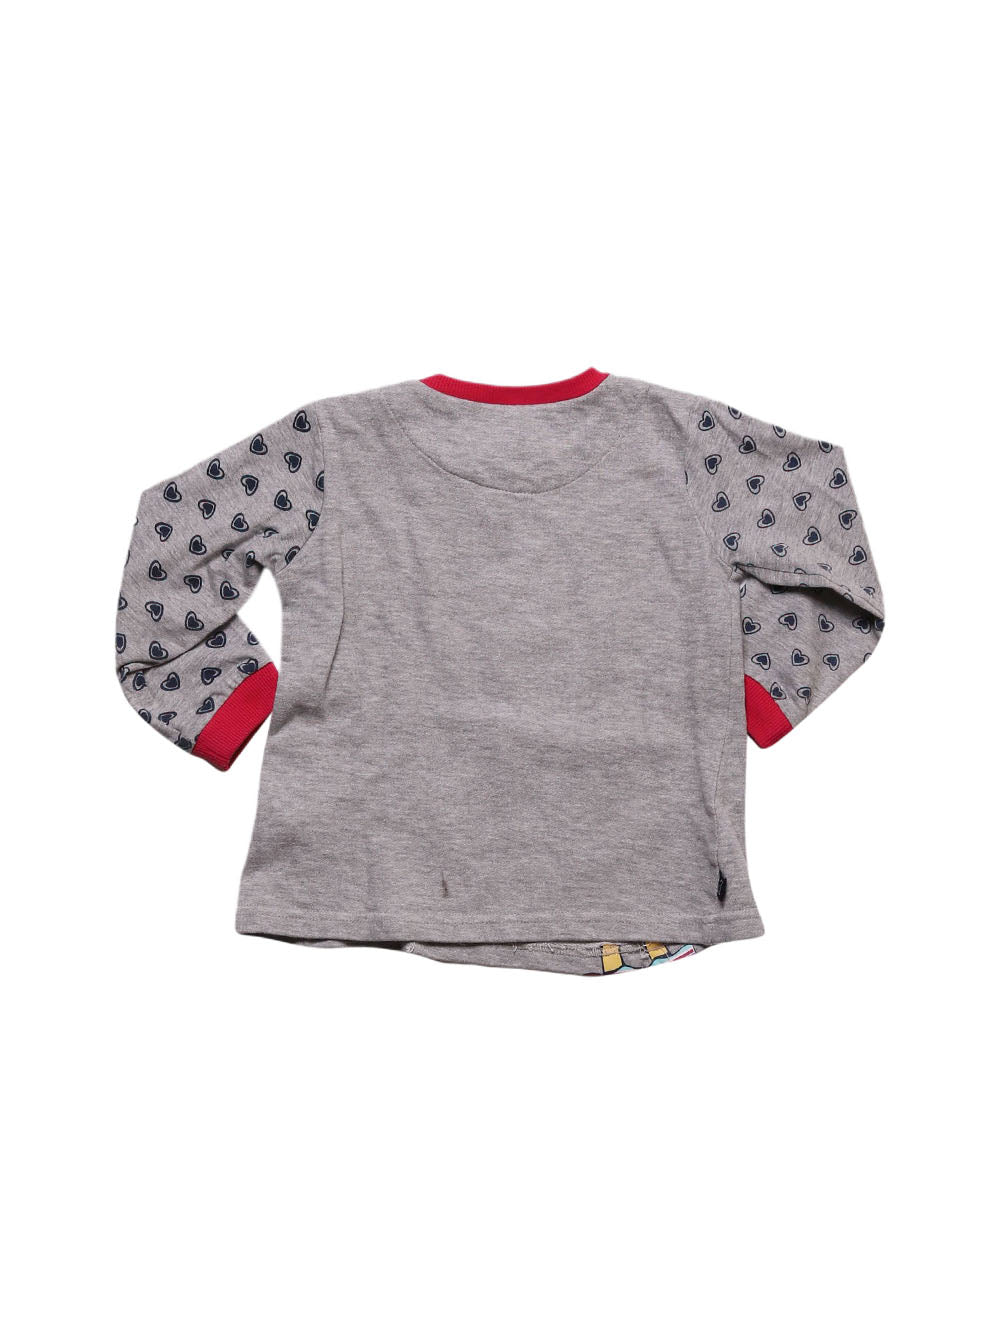 Back photo of Preloved North Pole Grey Girl's sweatshirt - size 12-18 mths